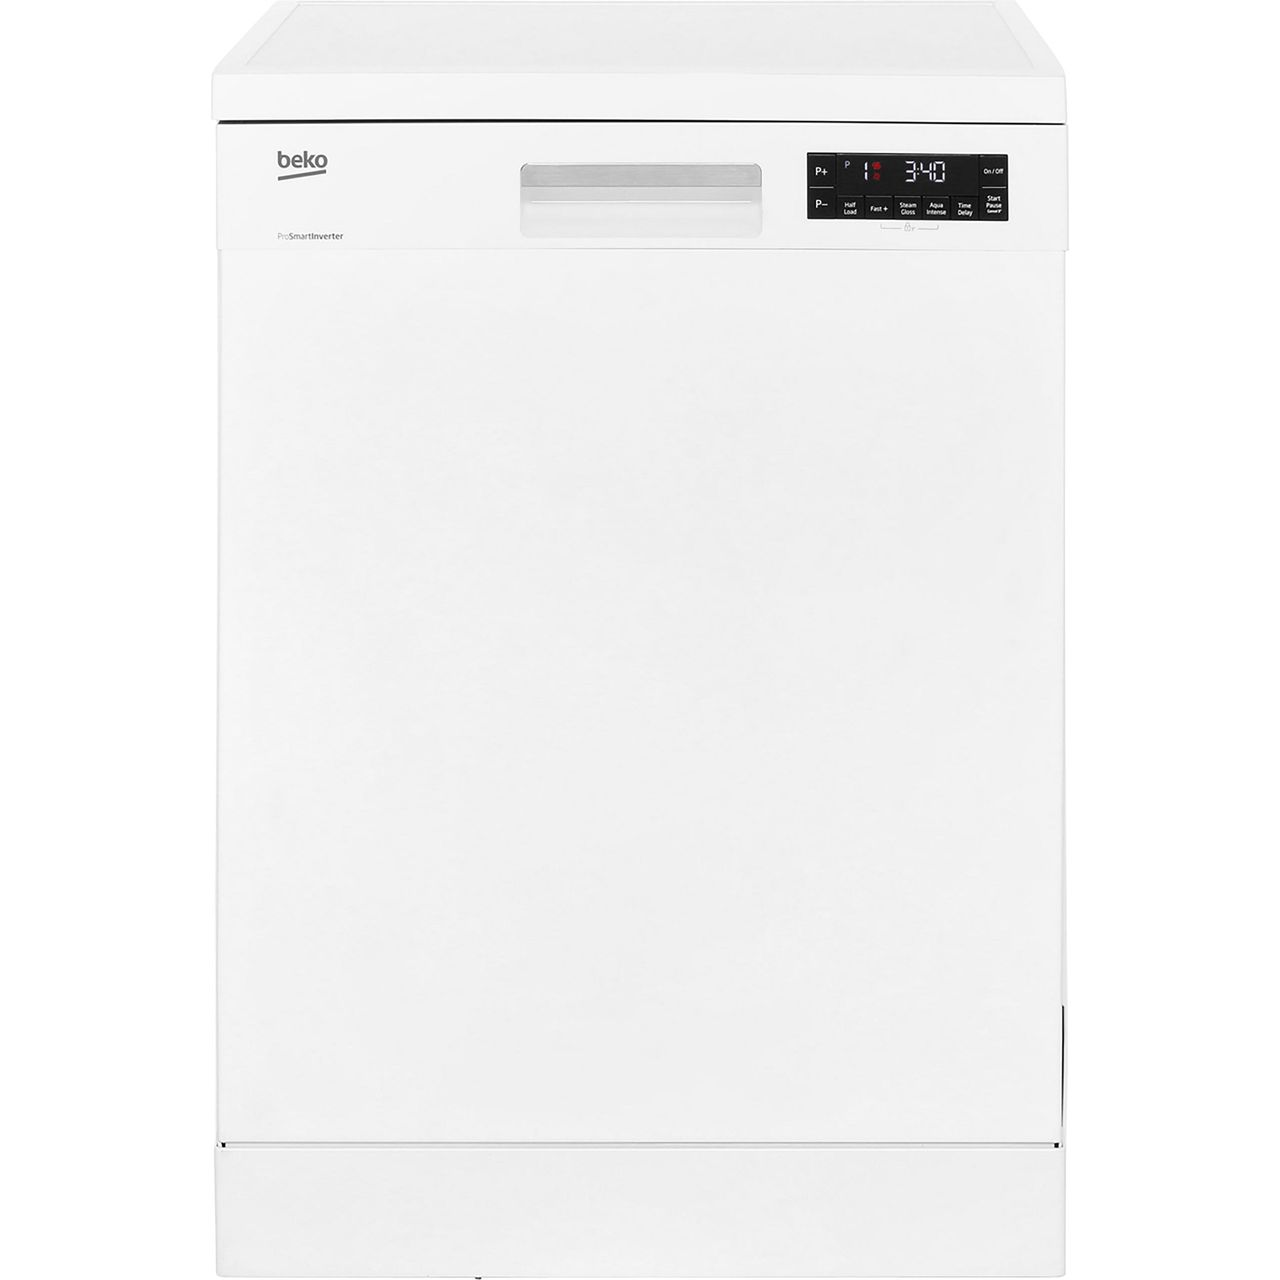 7bd43cd19be ... Beko DFN28R22W Standard Dishwasher - White - A++ Rated - DFN28R22W_WH -  1 ...